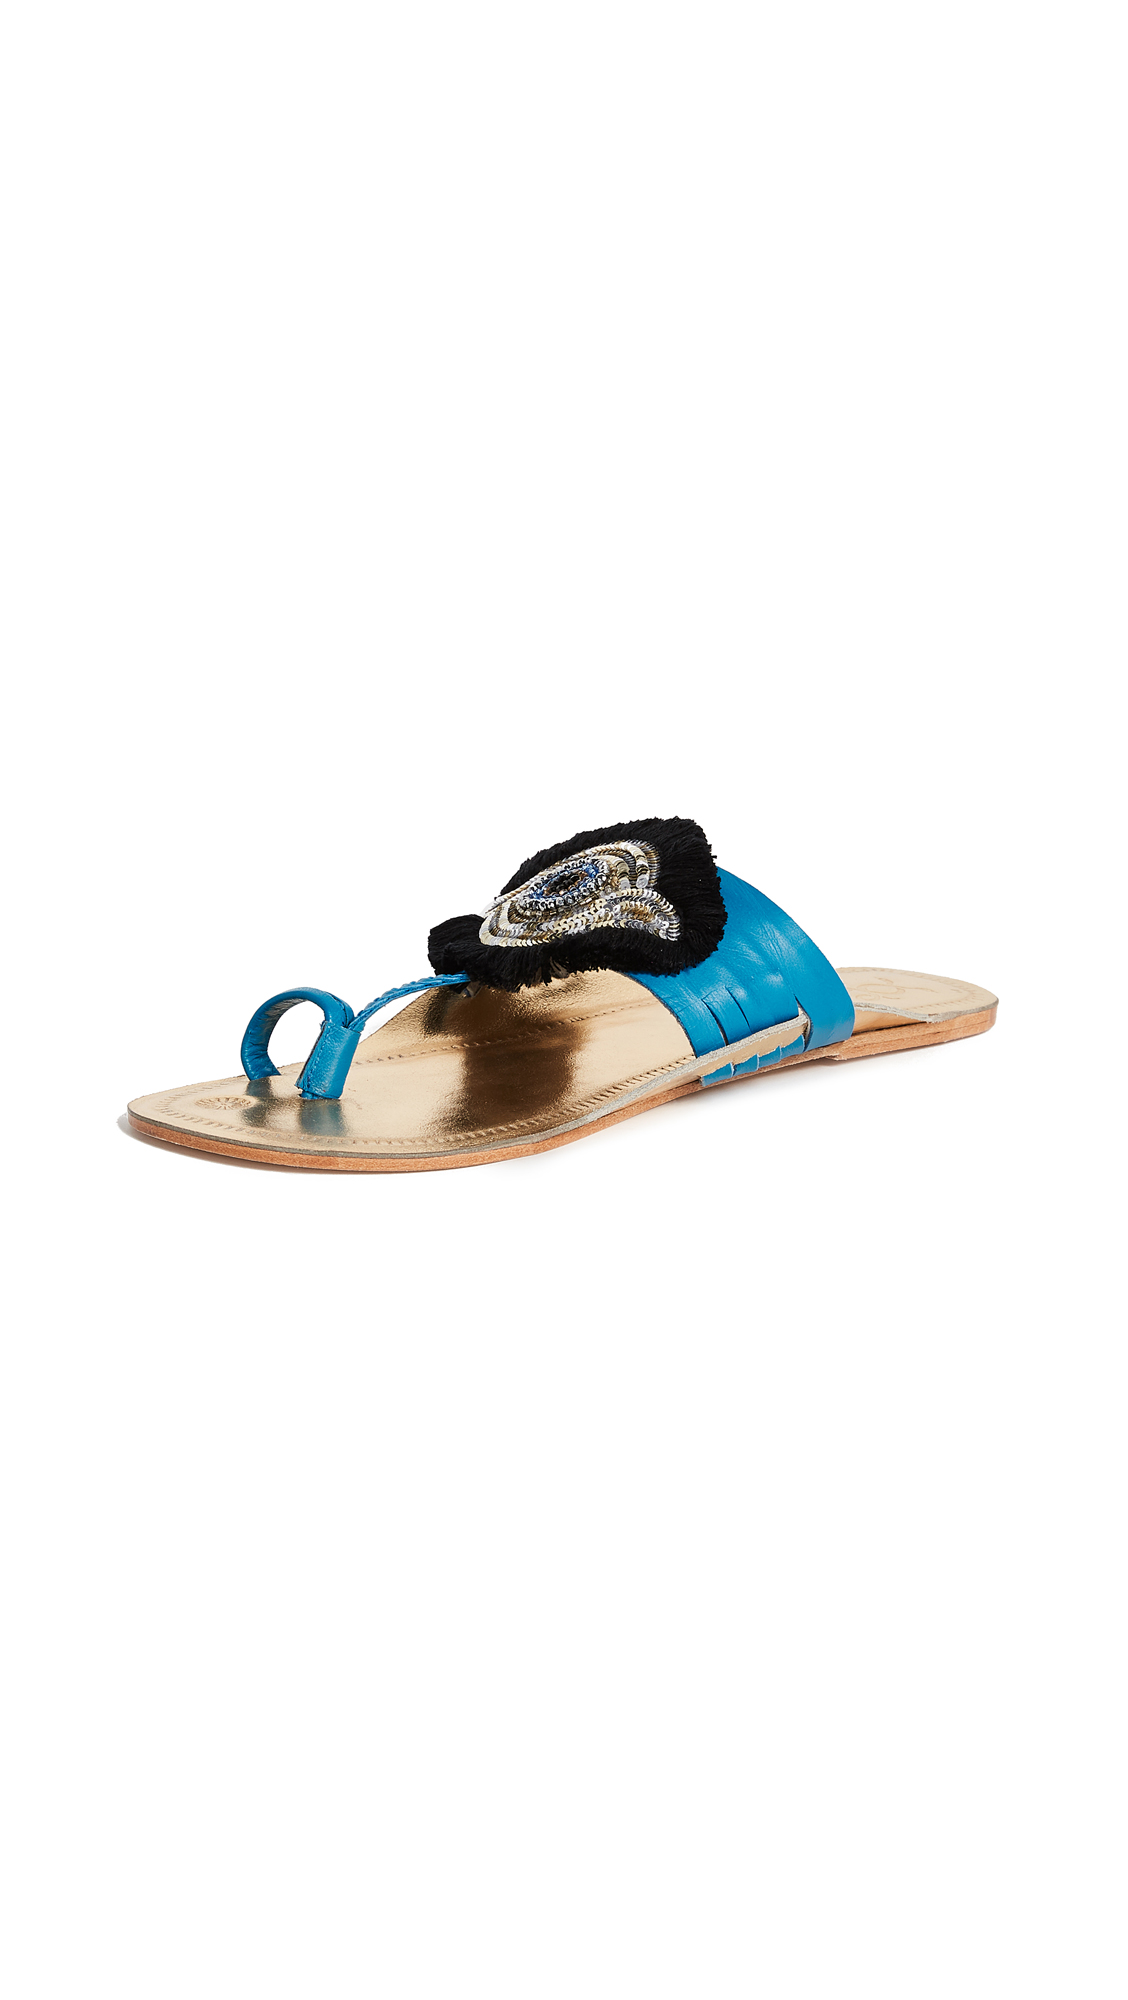 Figue Evil Eye Sandals - Gold/Milos Blue